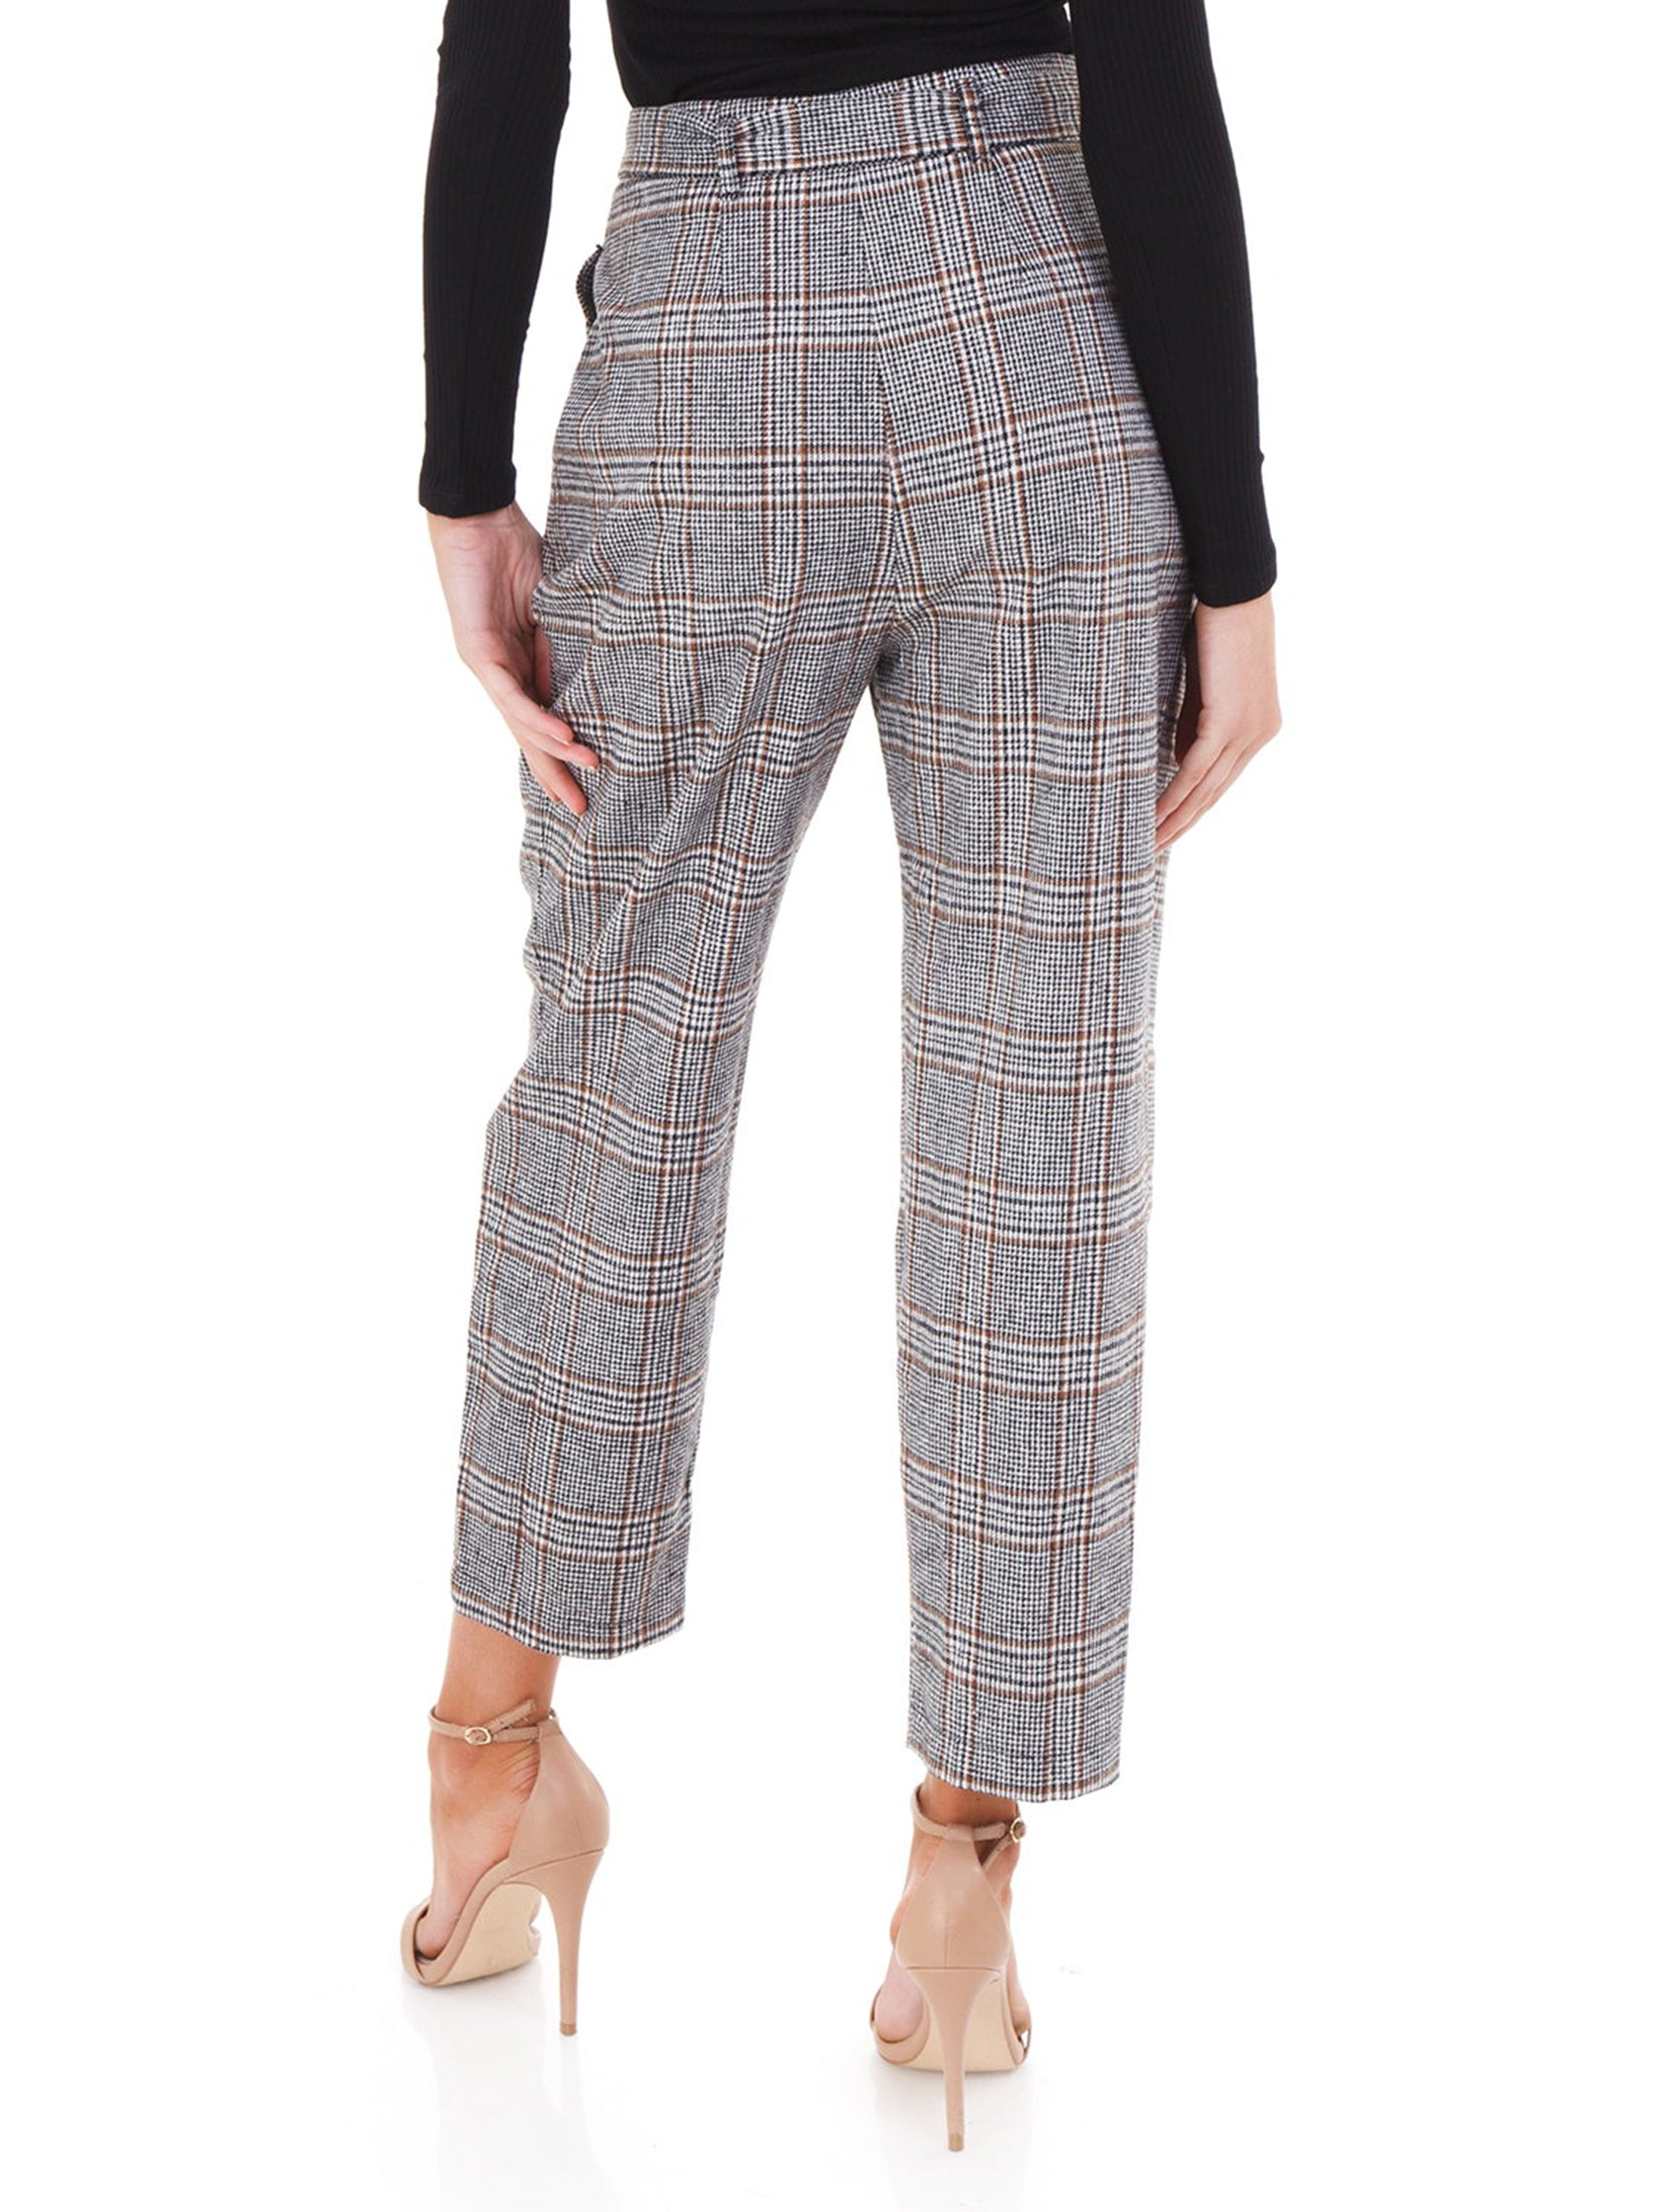 Women outfit in a pants rental from ASTR called Tie Waist Trousers